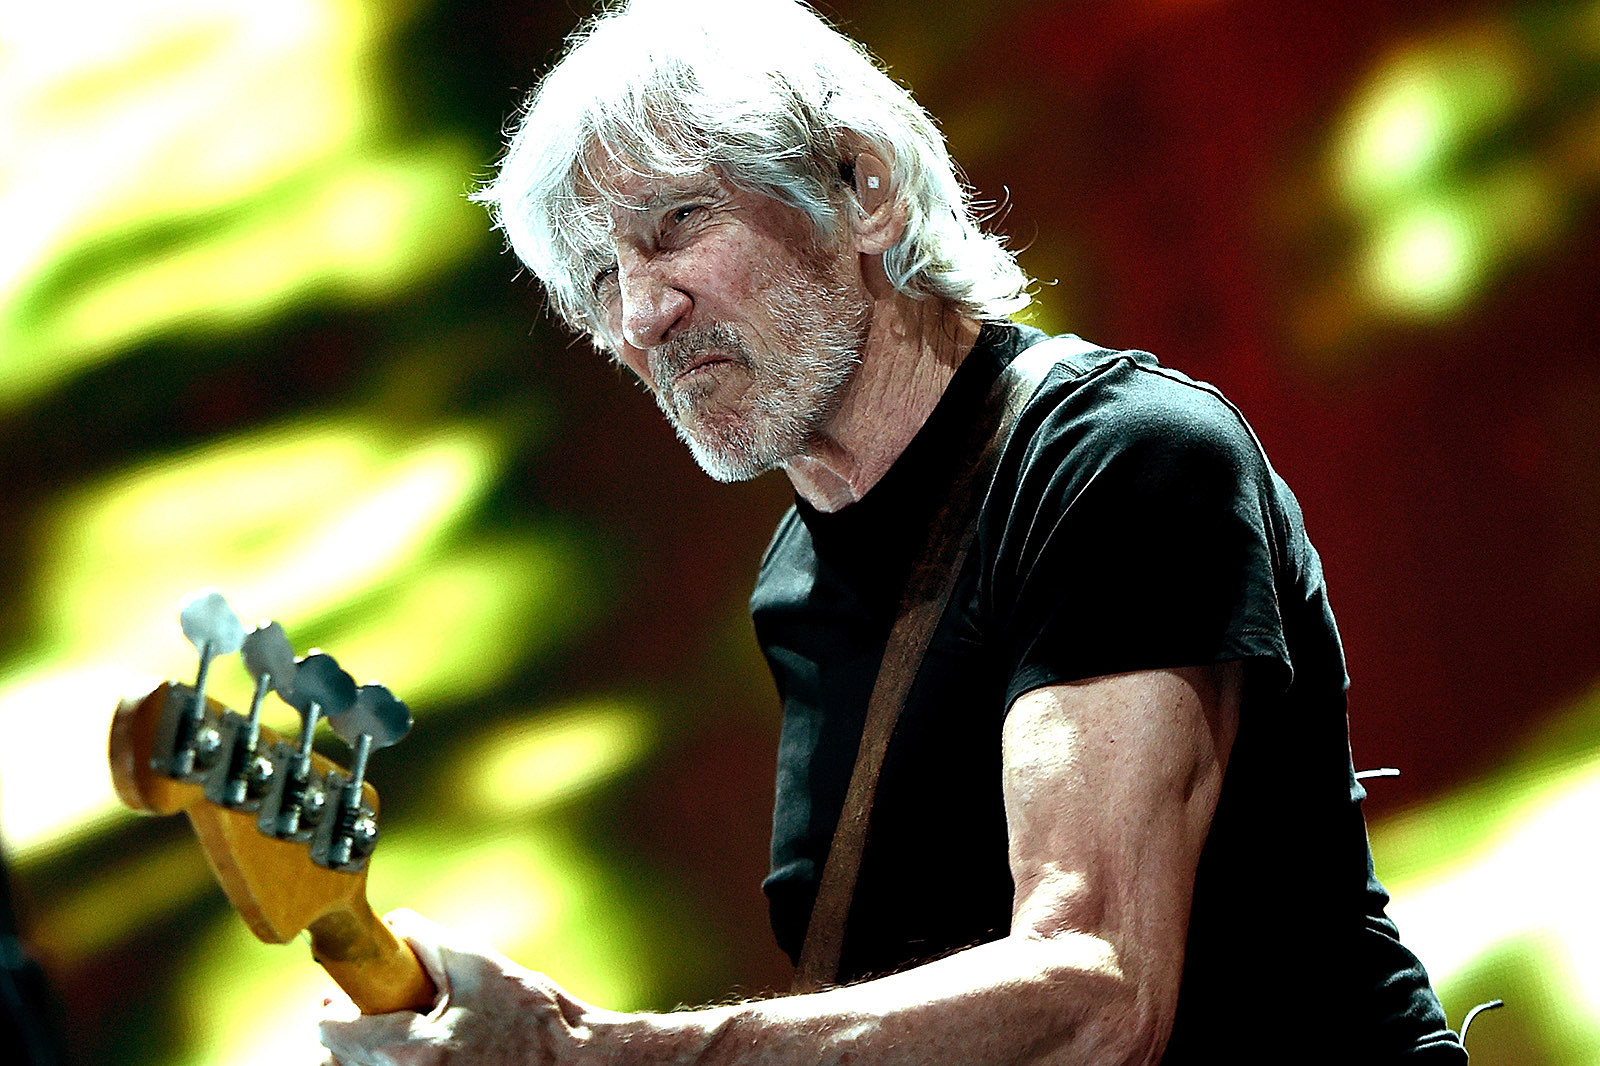 Roger Waters 'Went Apes—' Over Kids Picked for 'The Wall' Show